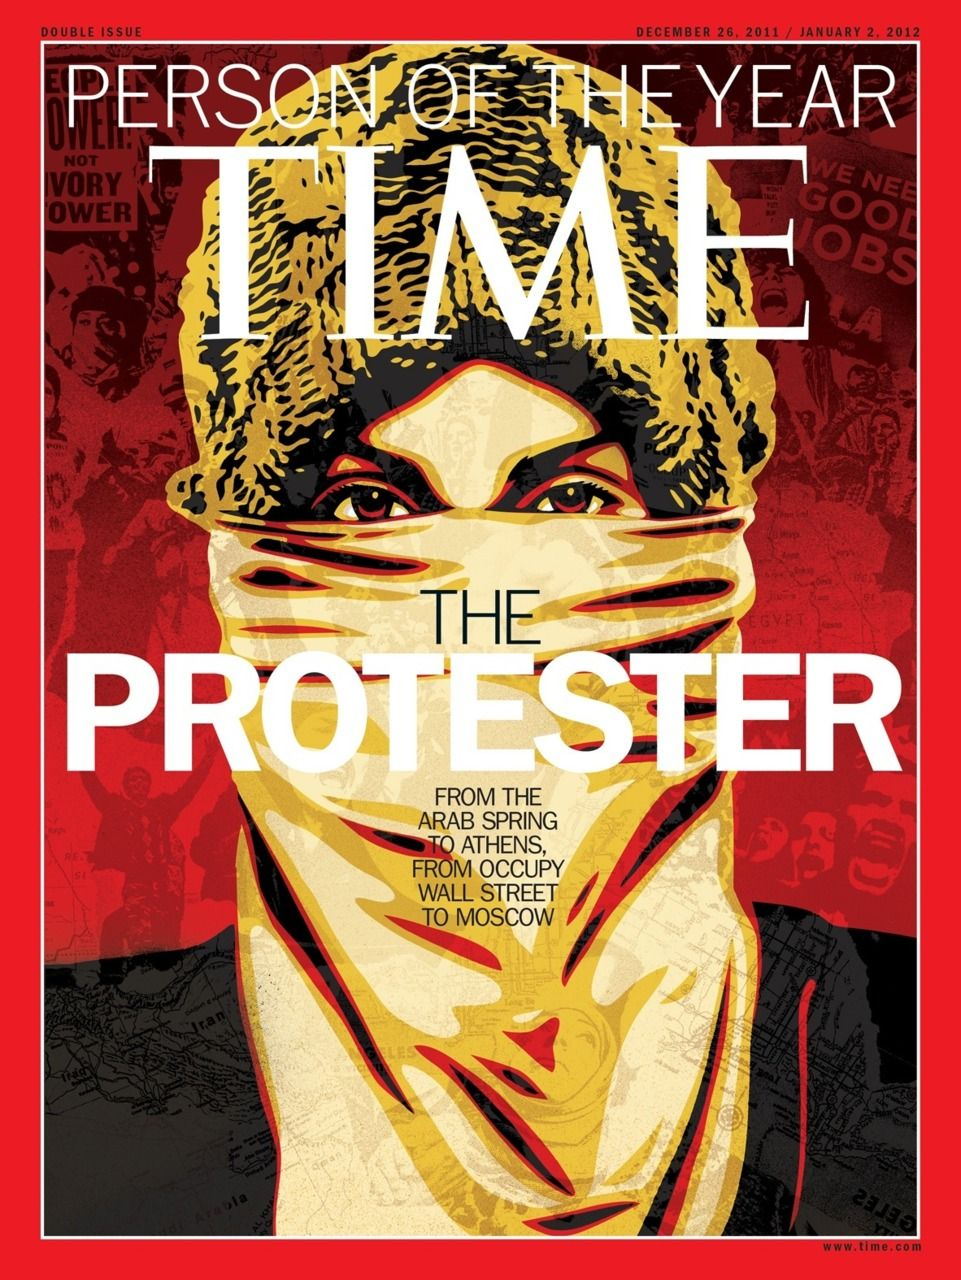 Time Person Of The Year - The Protester